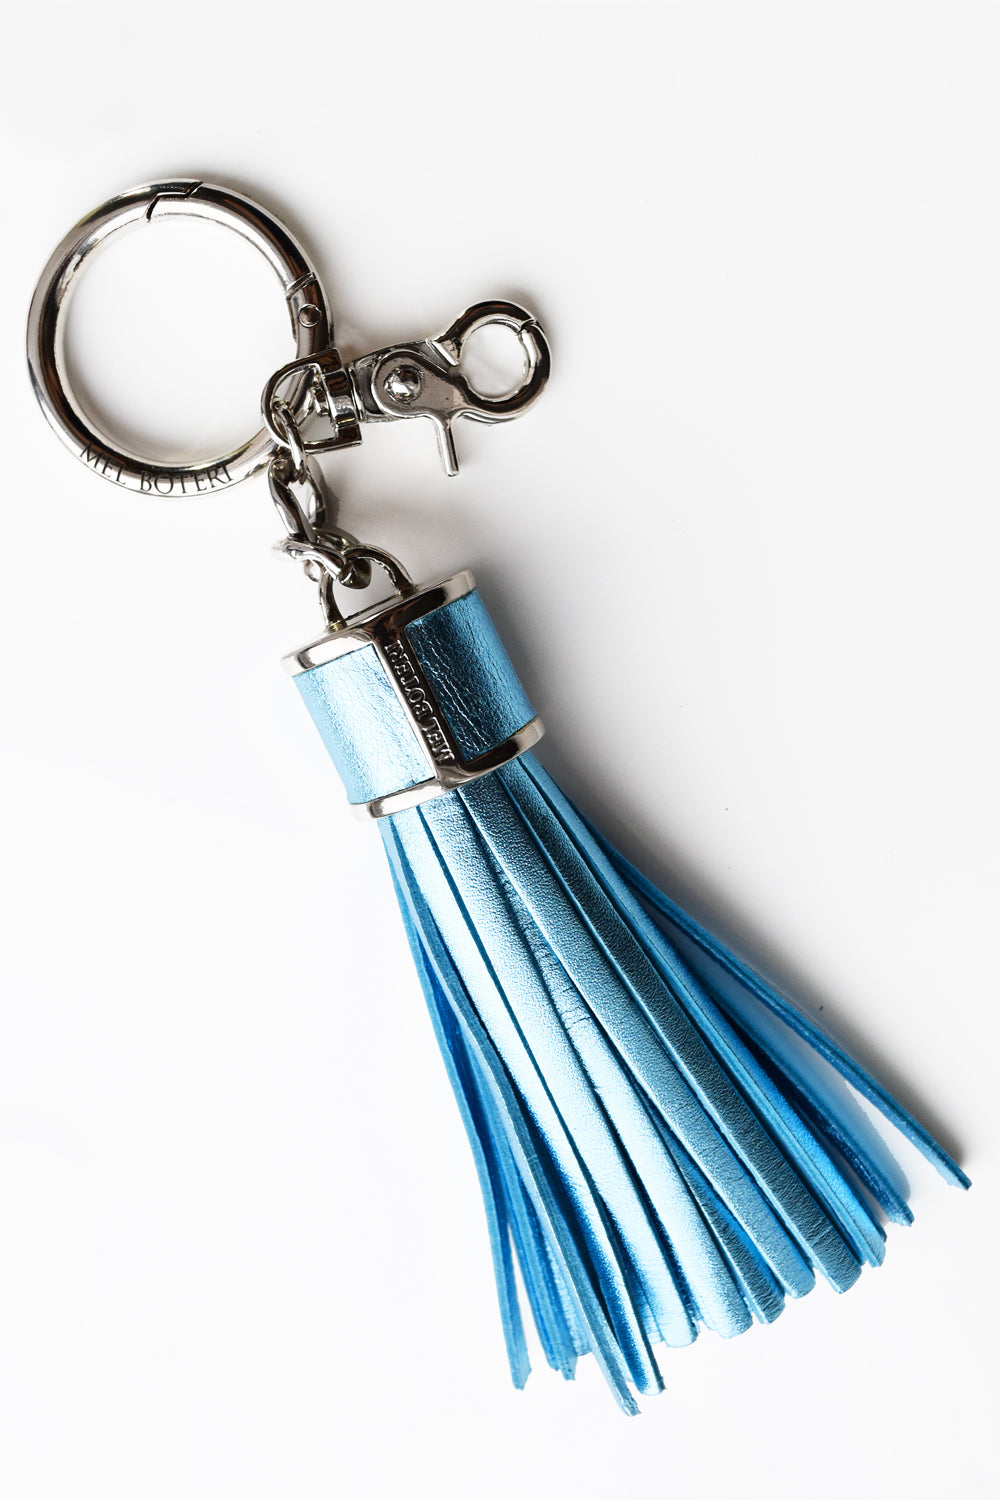 Mel Boteri | Metallic Blue Leather Tassel Bag and Key Charm | Front